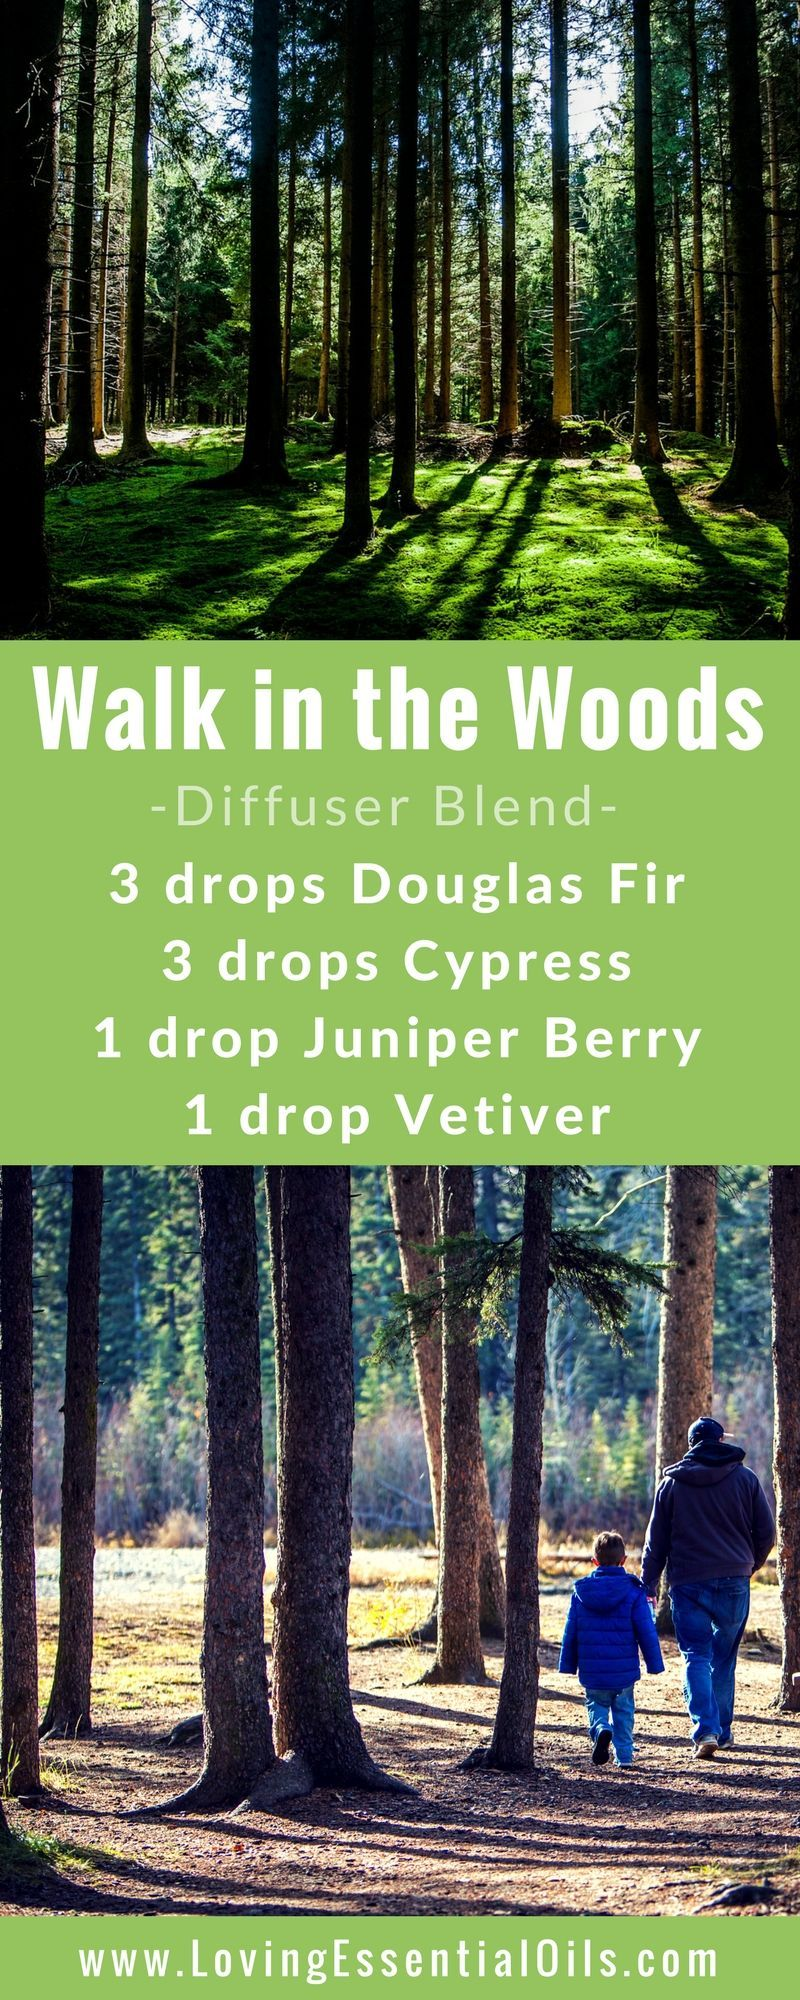 FREE GUIDE: 150 Essential Oil Diffuser Recipes You Will Love - Walk in the Woods diffuser blend with douglas fir cypress juniper berry and vetiver essential oils happy diffusing! #diffuserguide #diffusingoils #diffuserblends #winterdiffuserblends